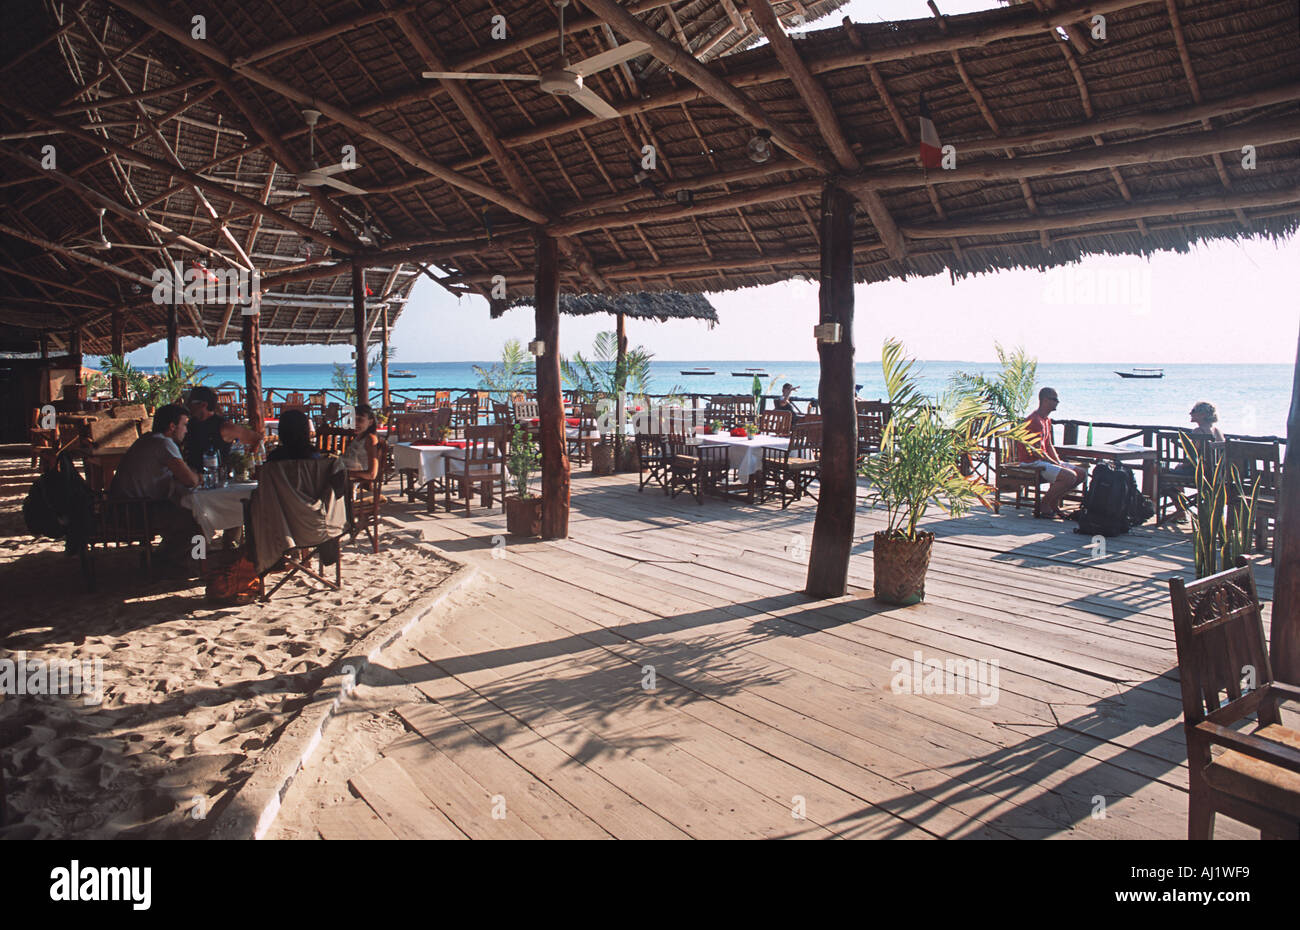 Breakfast time The Big Fish Restaurant at Aman Bungalows Nungwi Northern tip of Unguja Zanzibar Tanzania East Africa - Stock Image